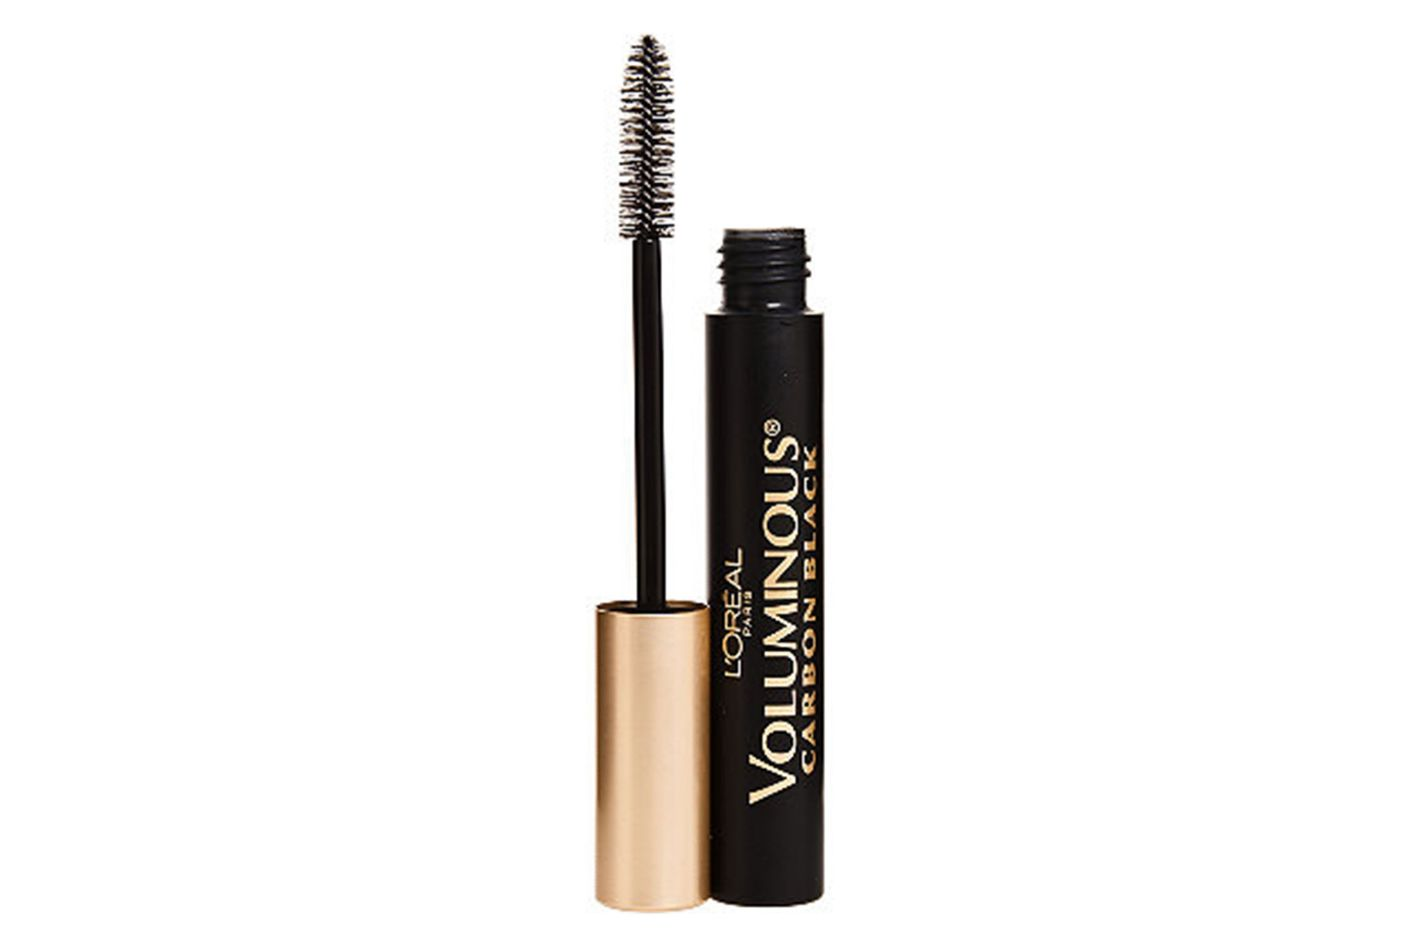 9a35c5a8ad1 L'Oréal Voluminous Volume Building Waterproof Mascara